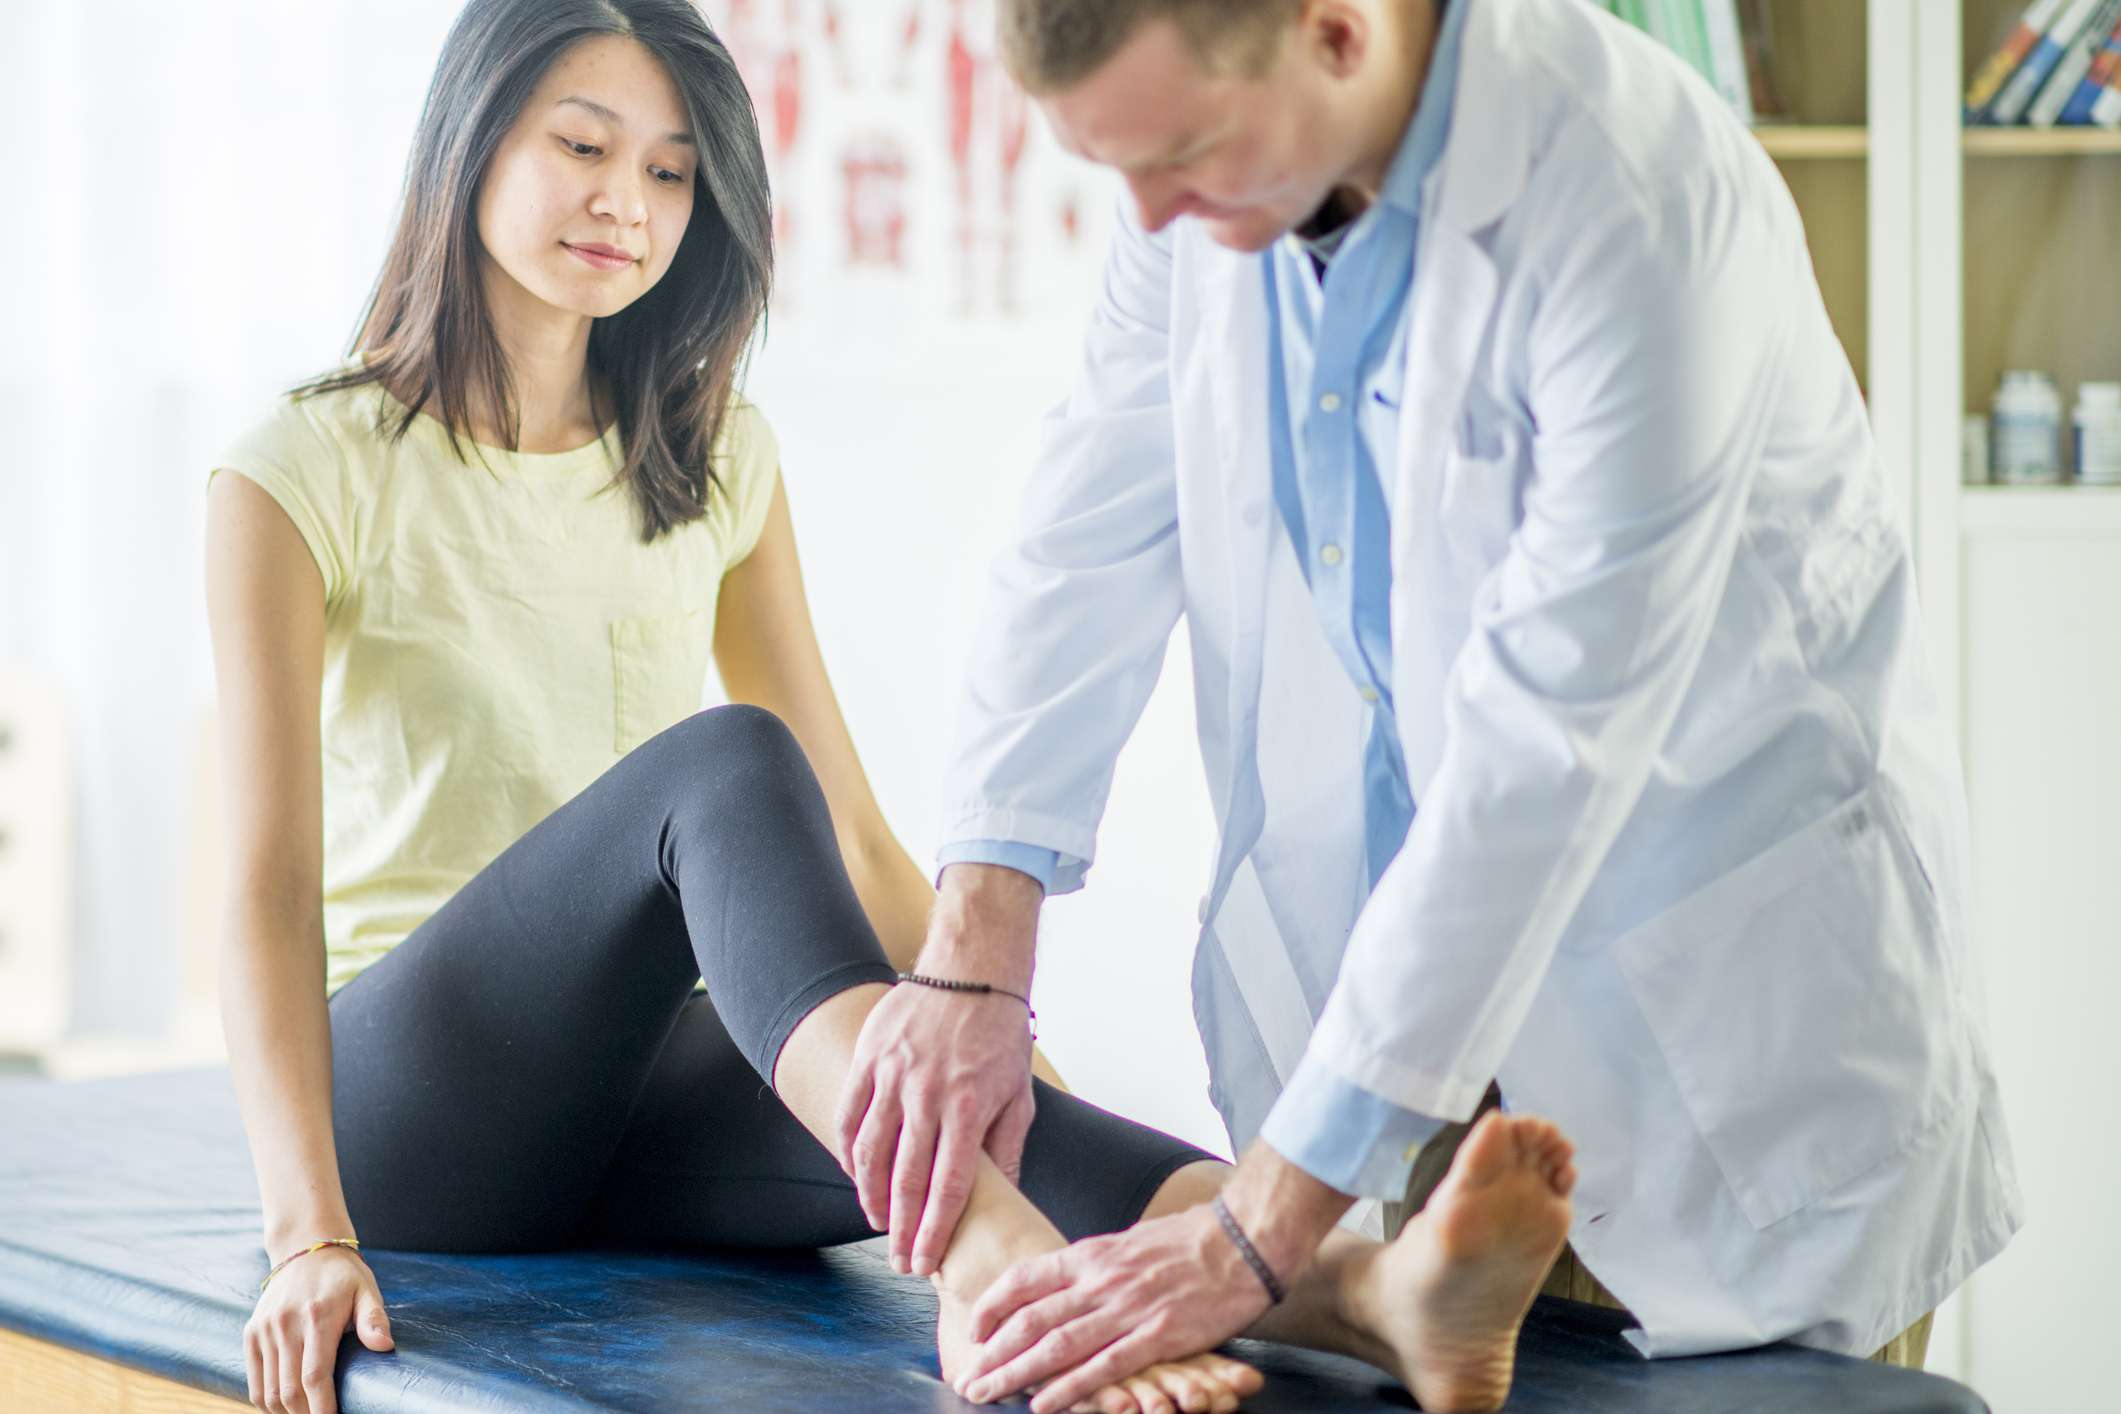 Woman getting her ankle checked by a doctor